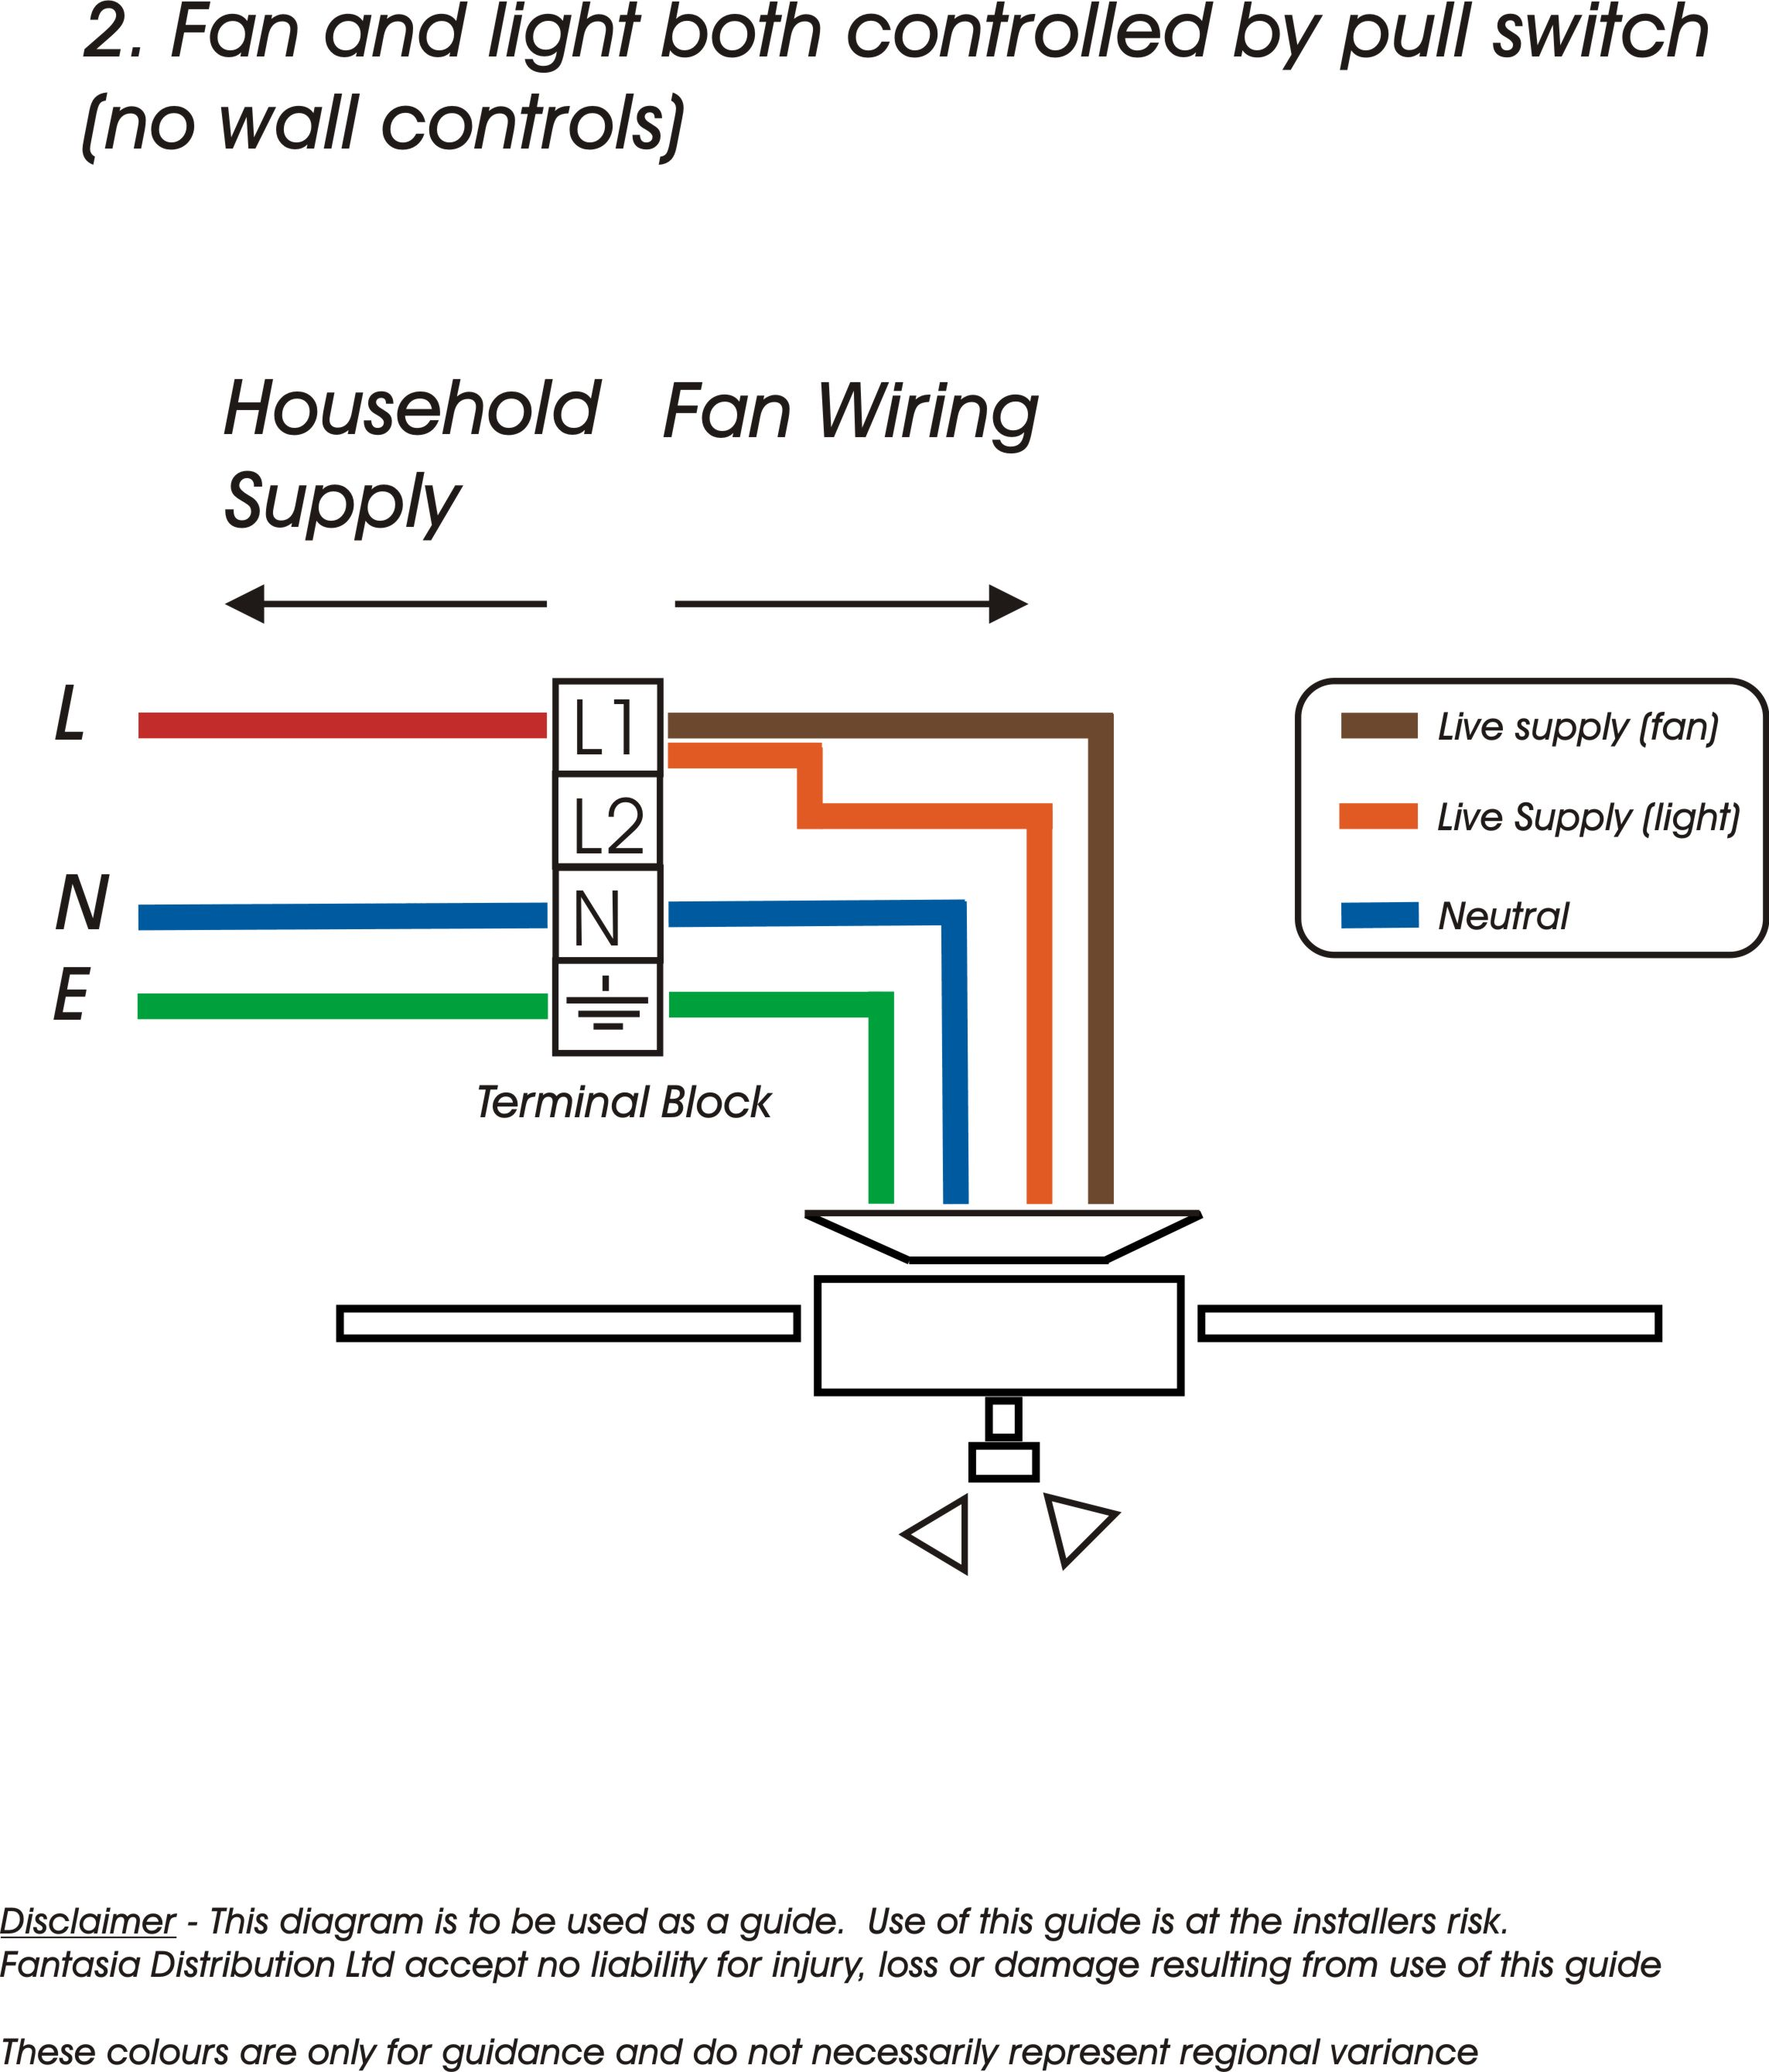 wiring ceiling fans 2 hampton bay ceiling fan motor wiring diagram integralbook com hampton bay ceiling fan wiring diagram red wire at fashall.co